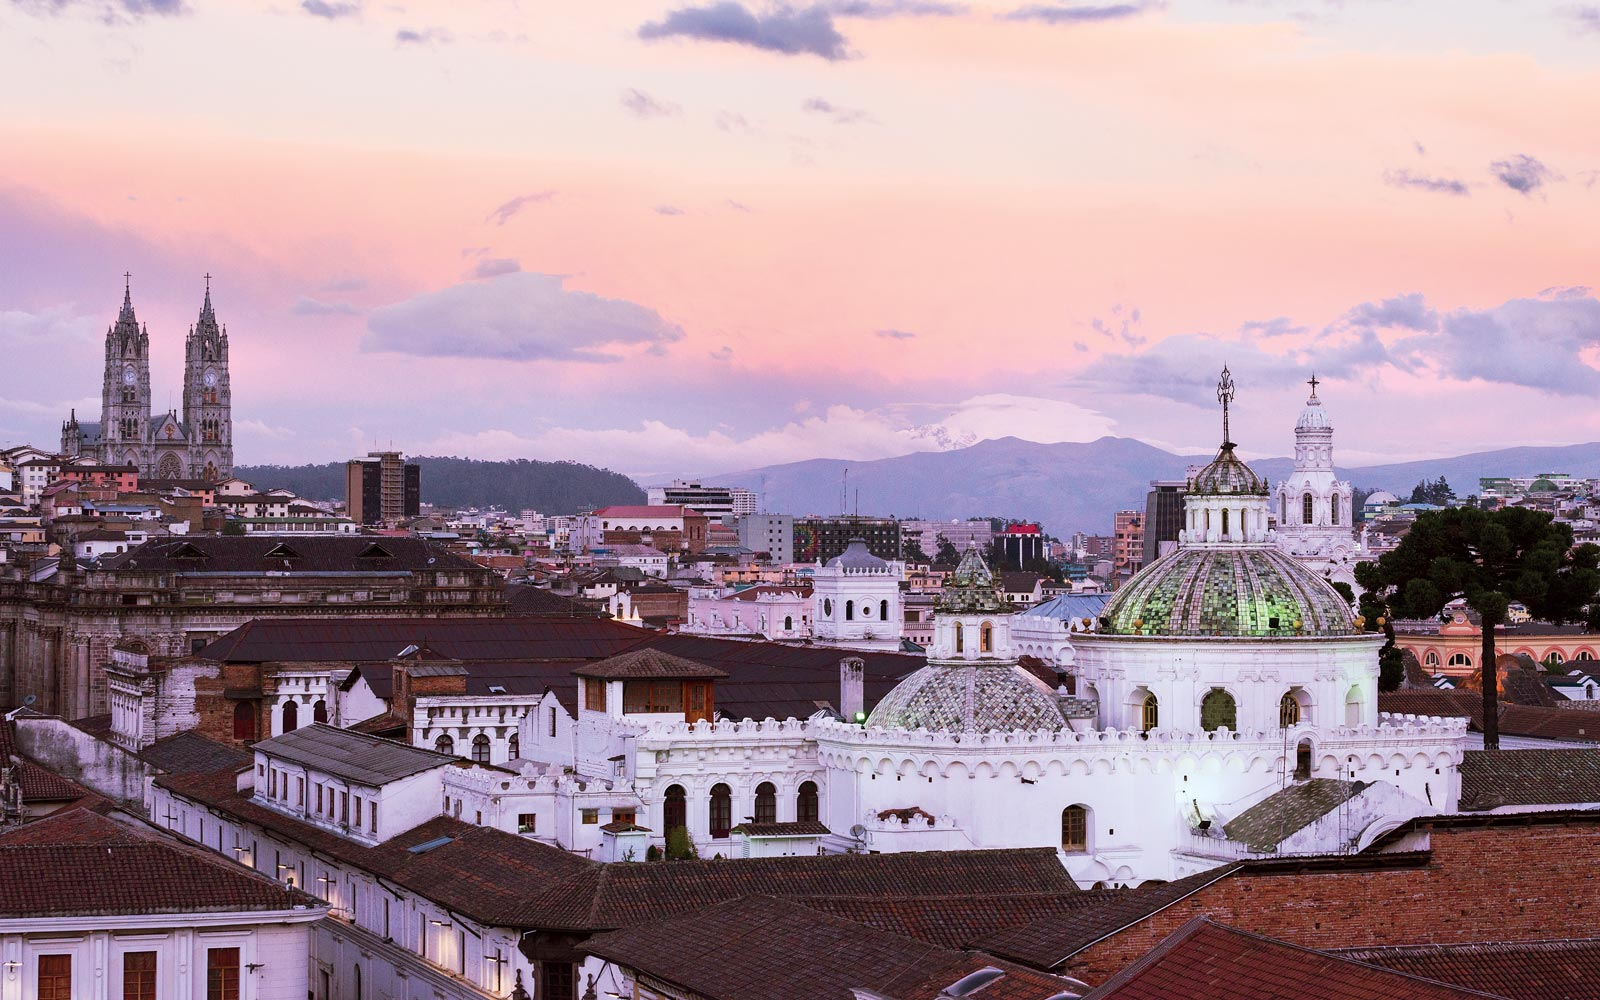 View of the Quito, Ecuador skyline